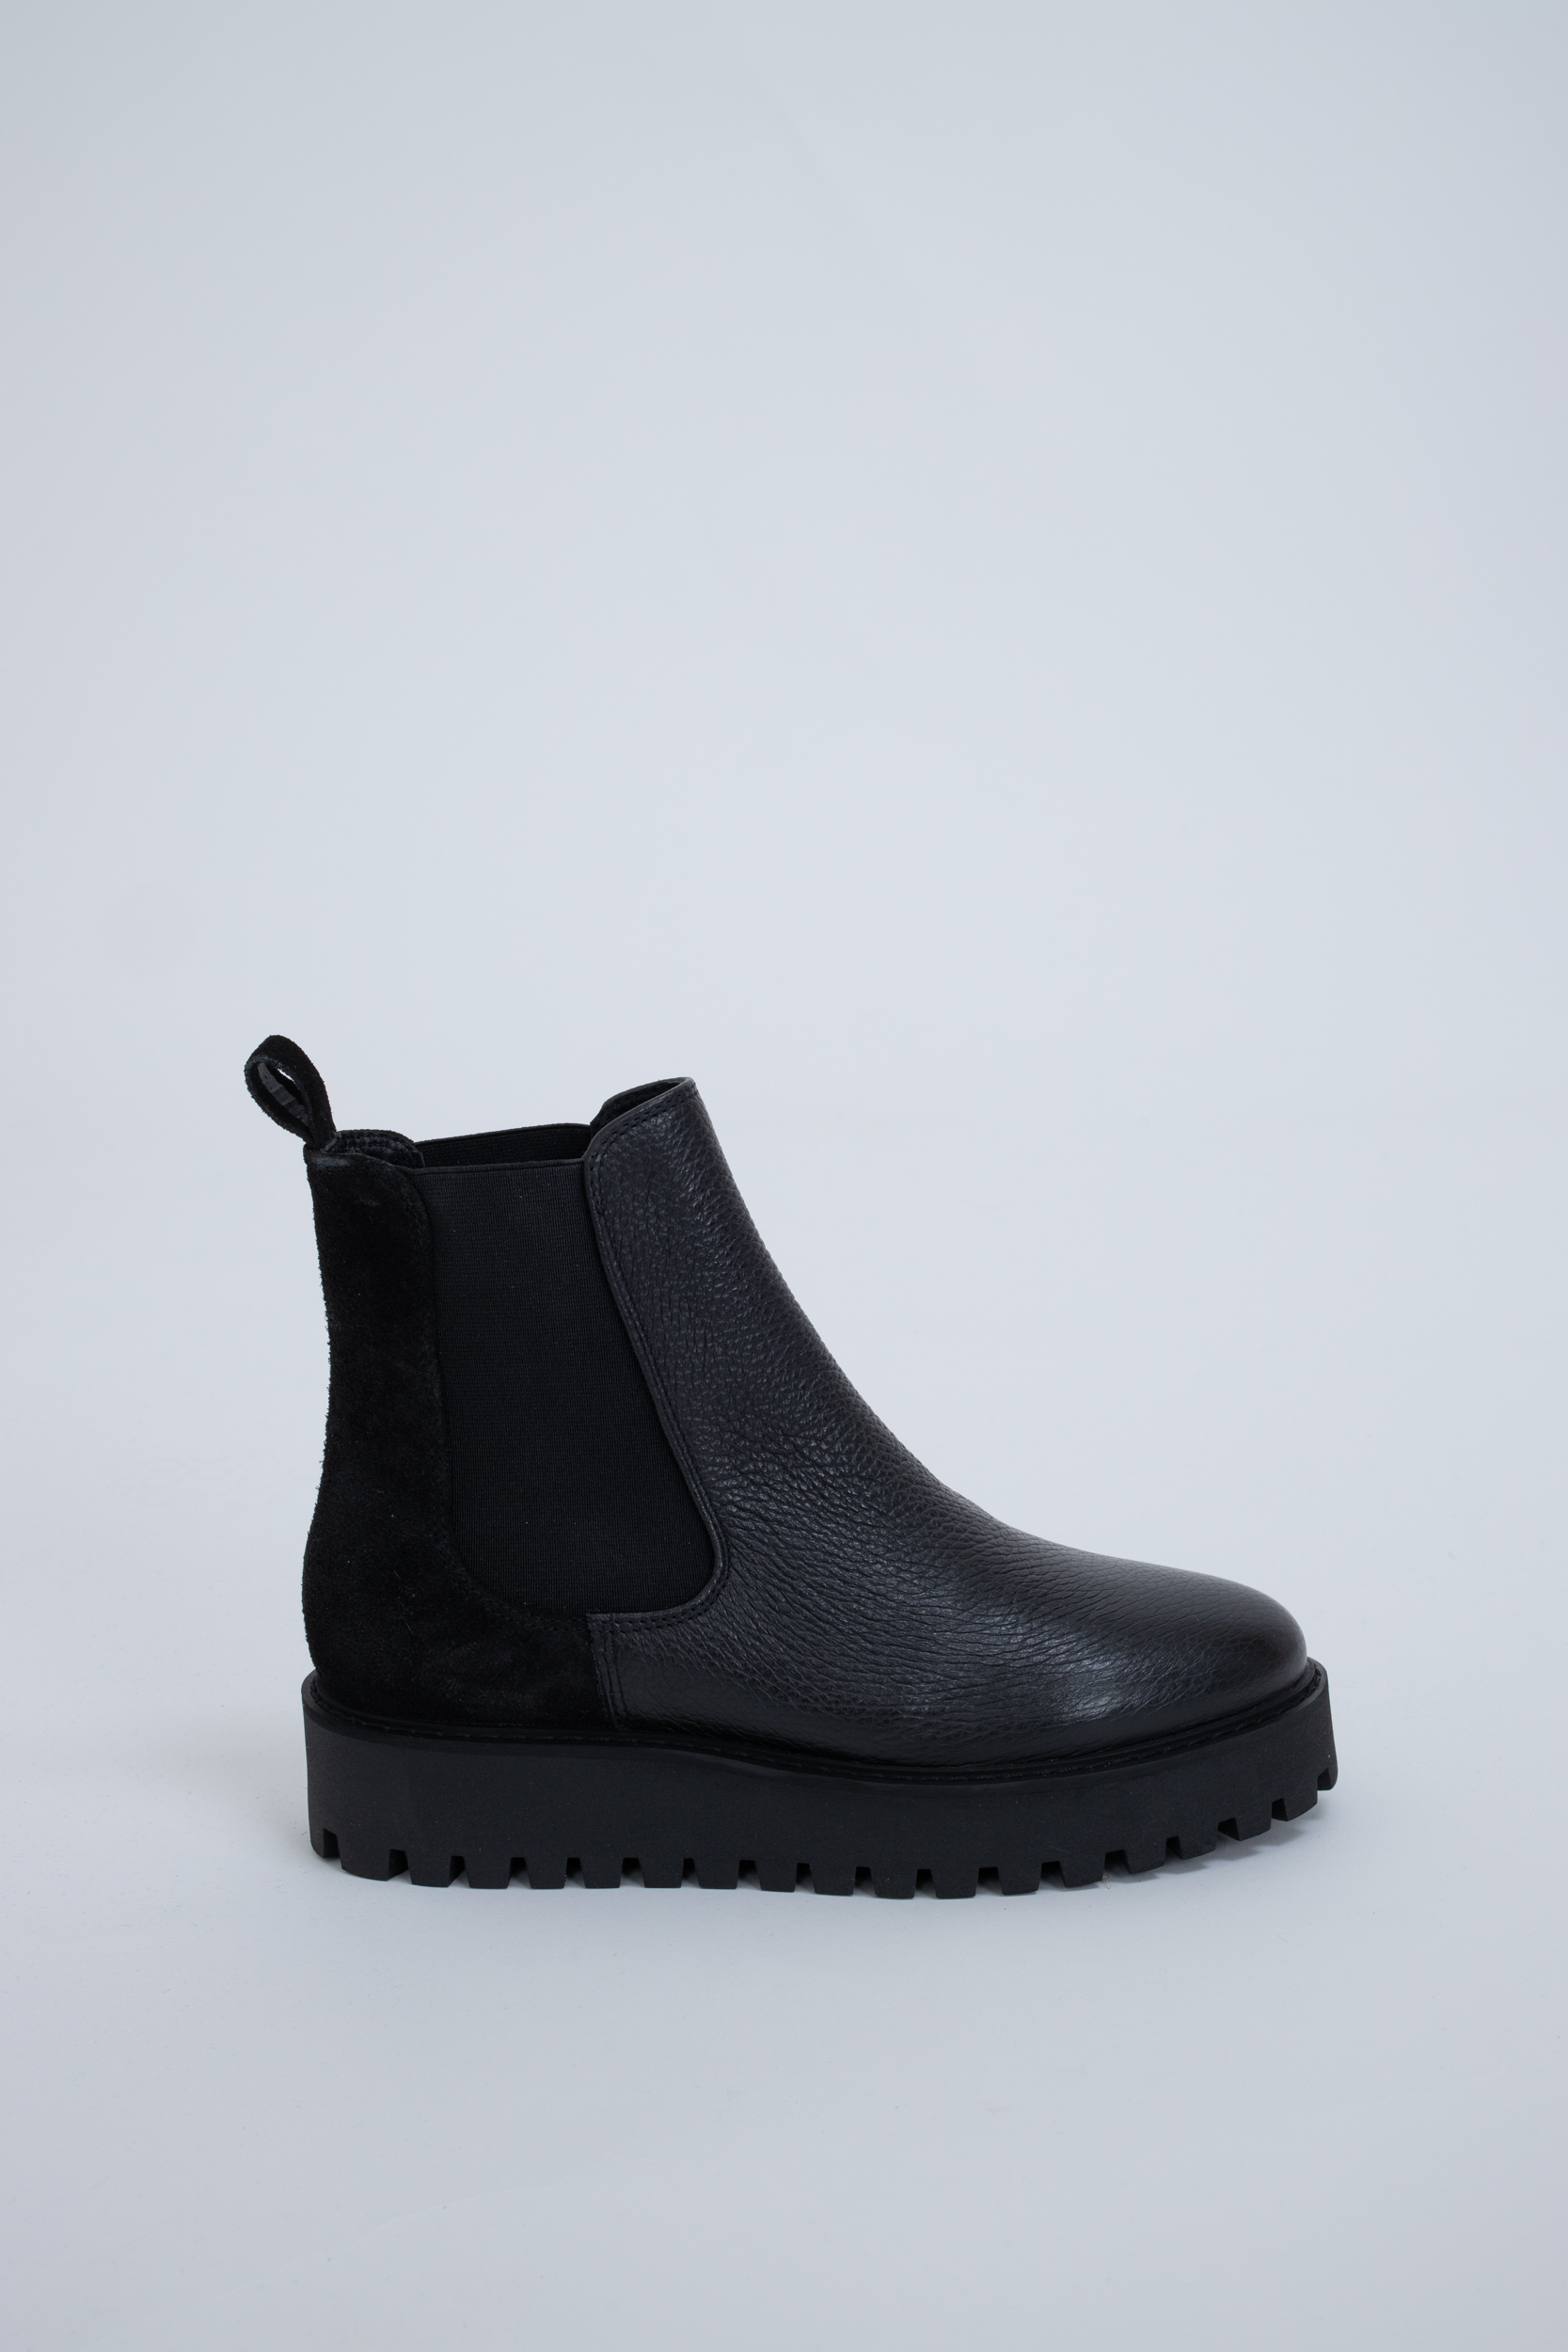 Boots Mina Chelsea Black Leather